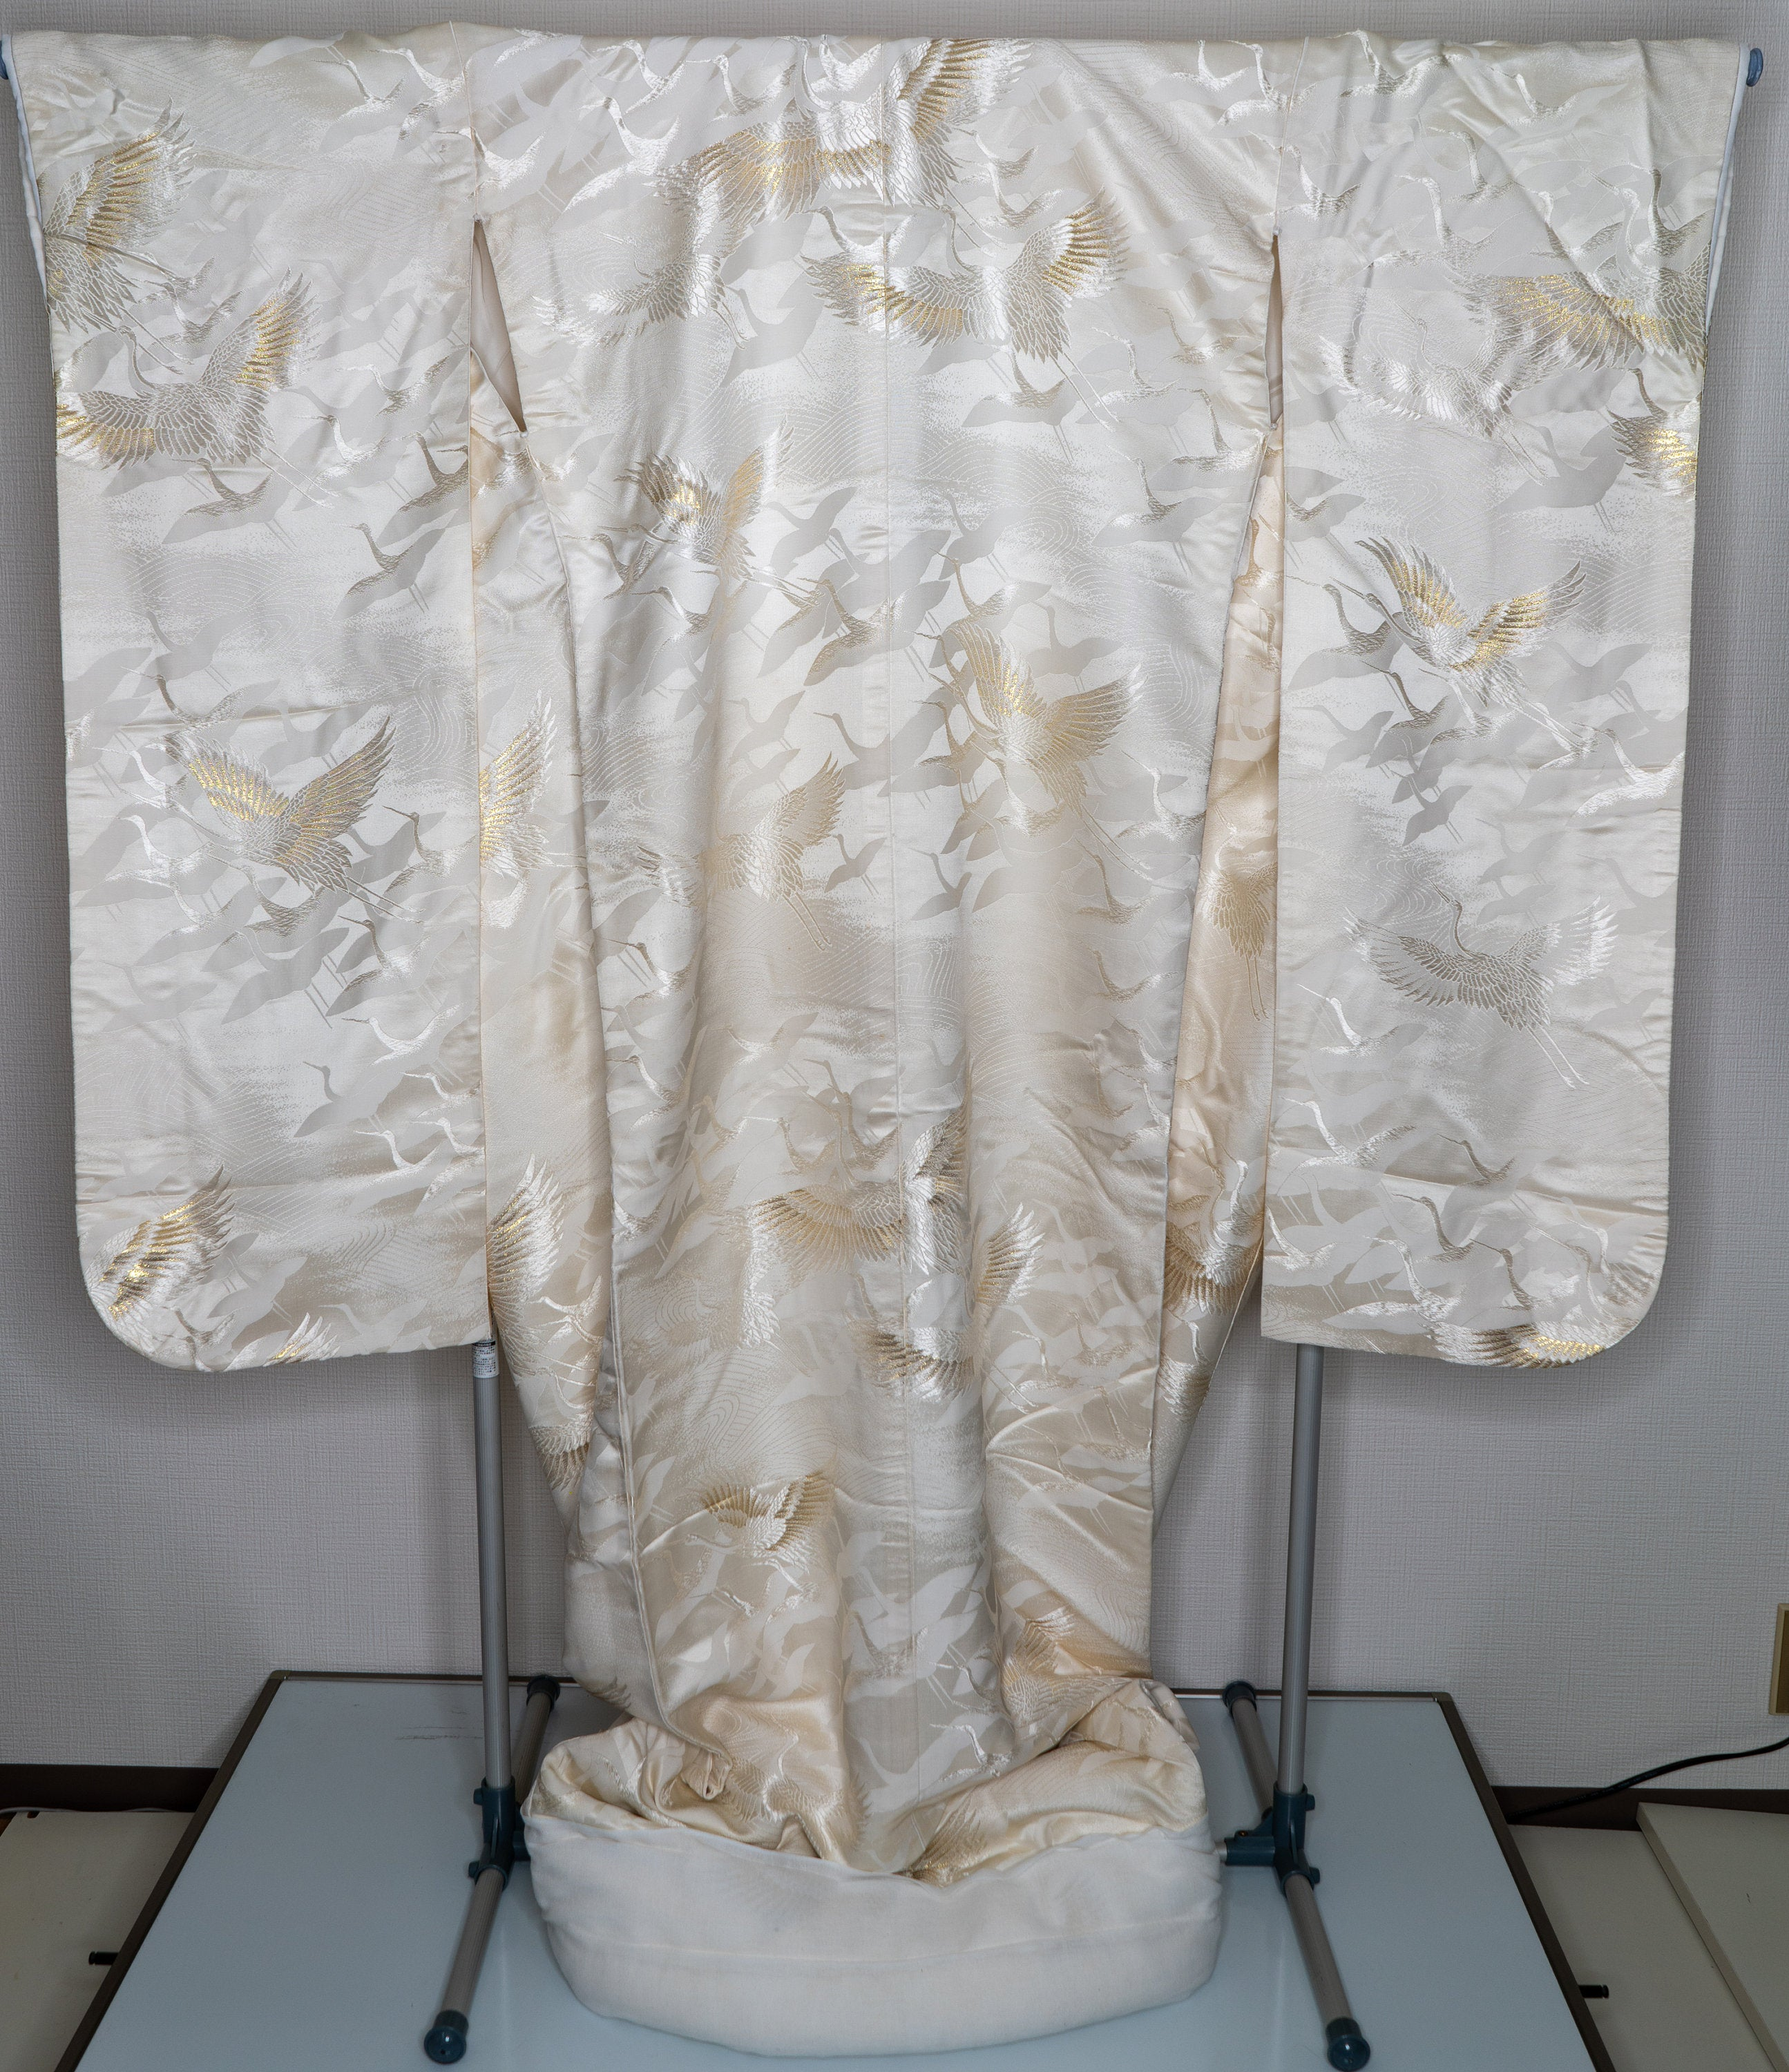 Vintage Shiromuku Uchikake Wedding Kimono - Long Heavy Silk Japanese Bridal Dress